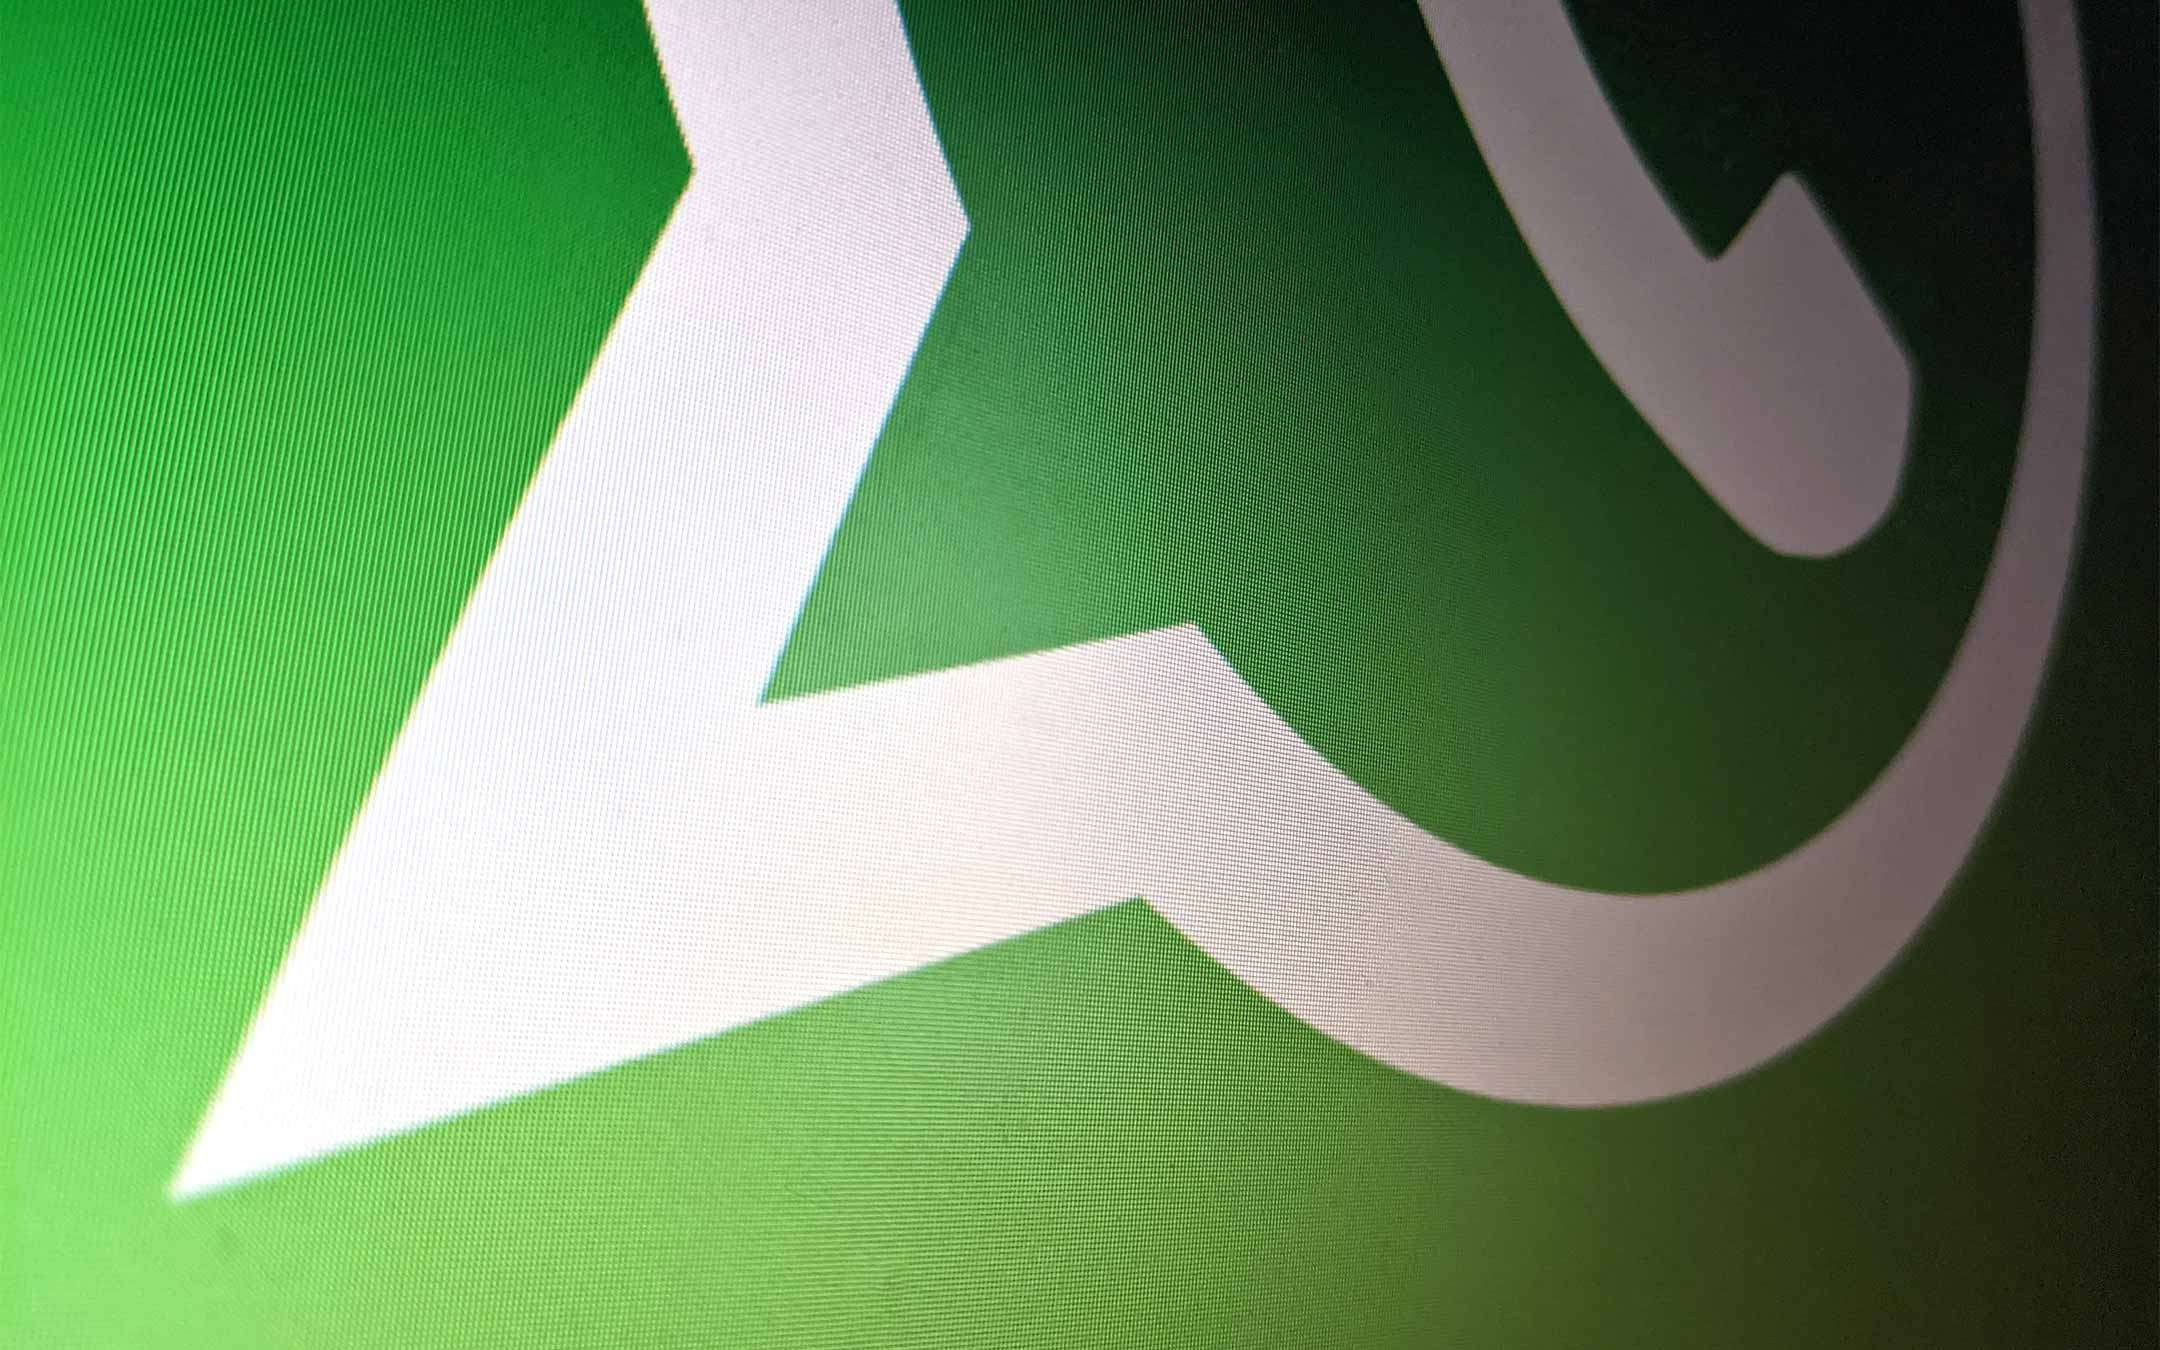 WhatsApp uses the state to reassure users